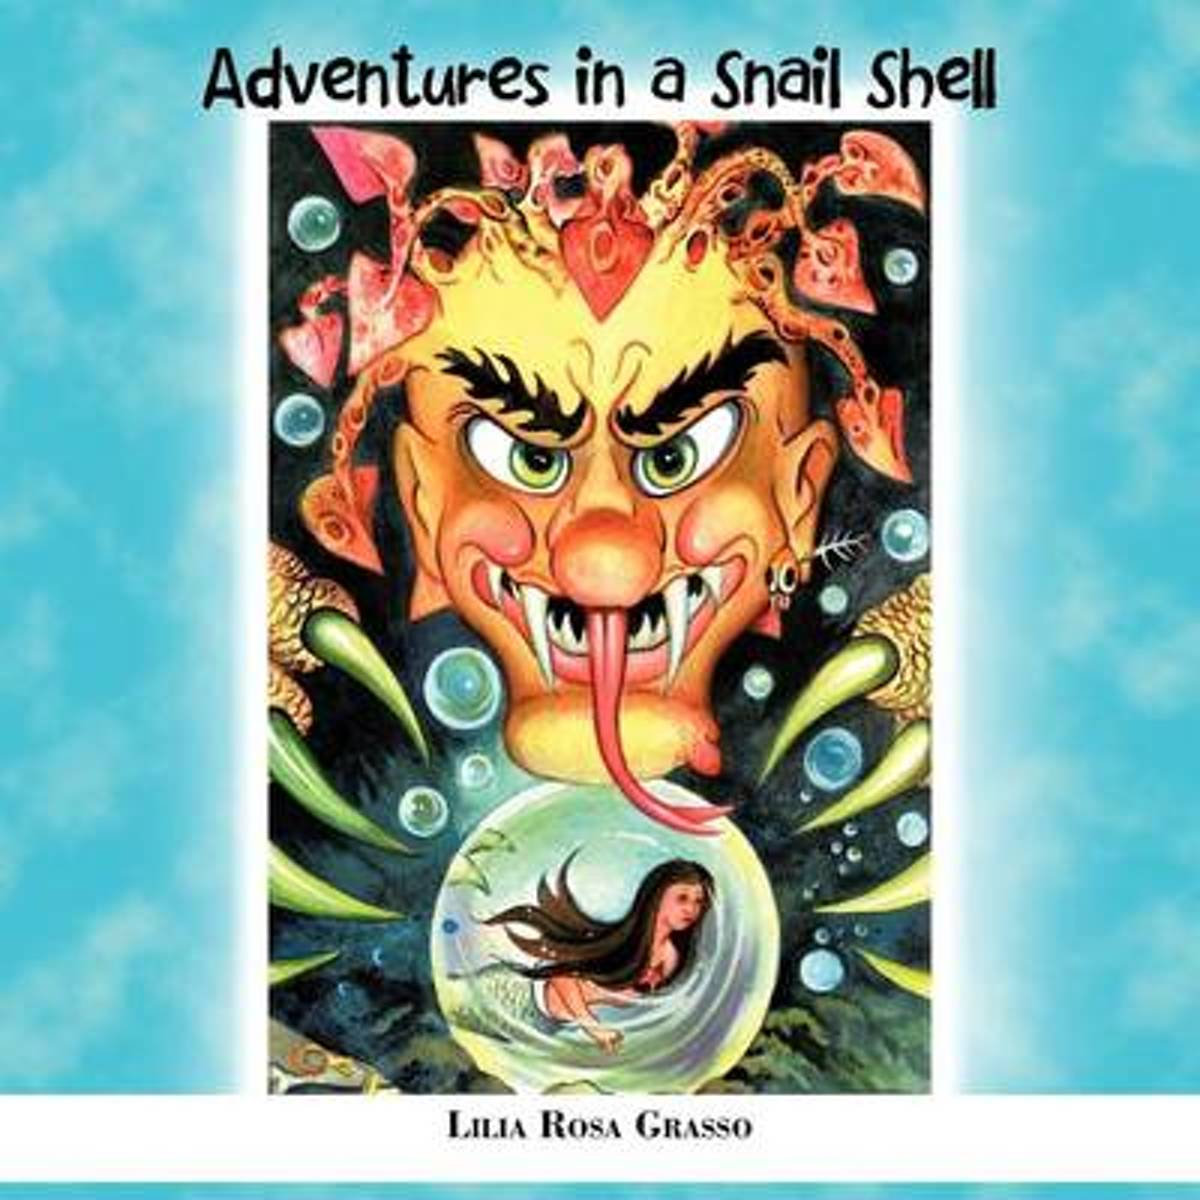 Adventures in a Snail Shell